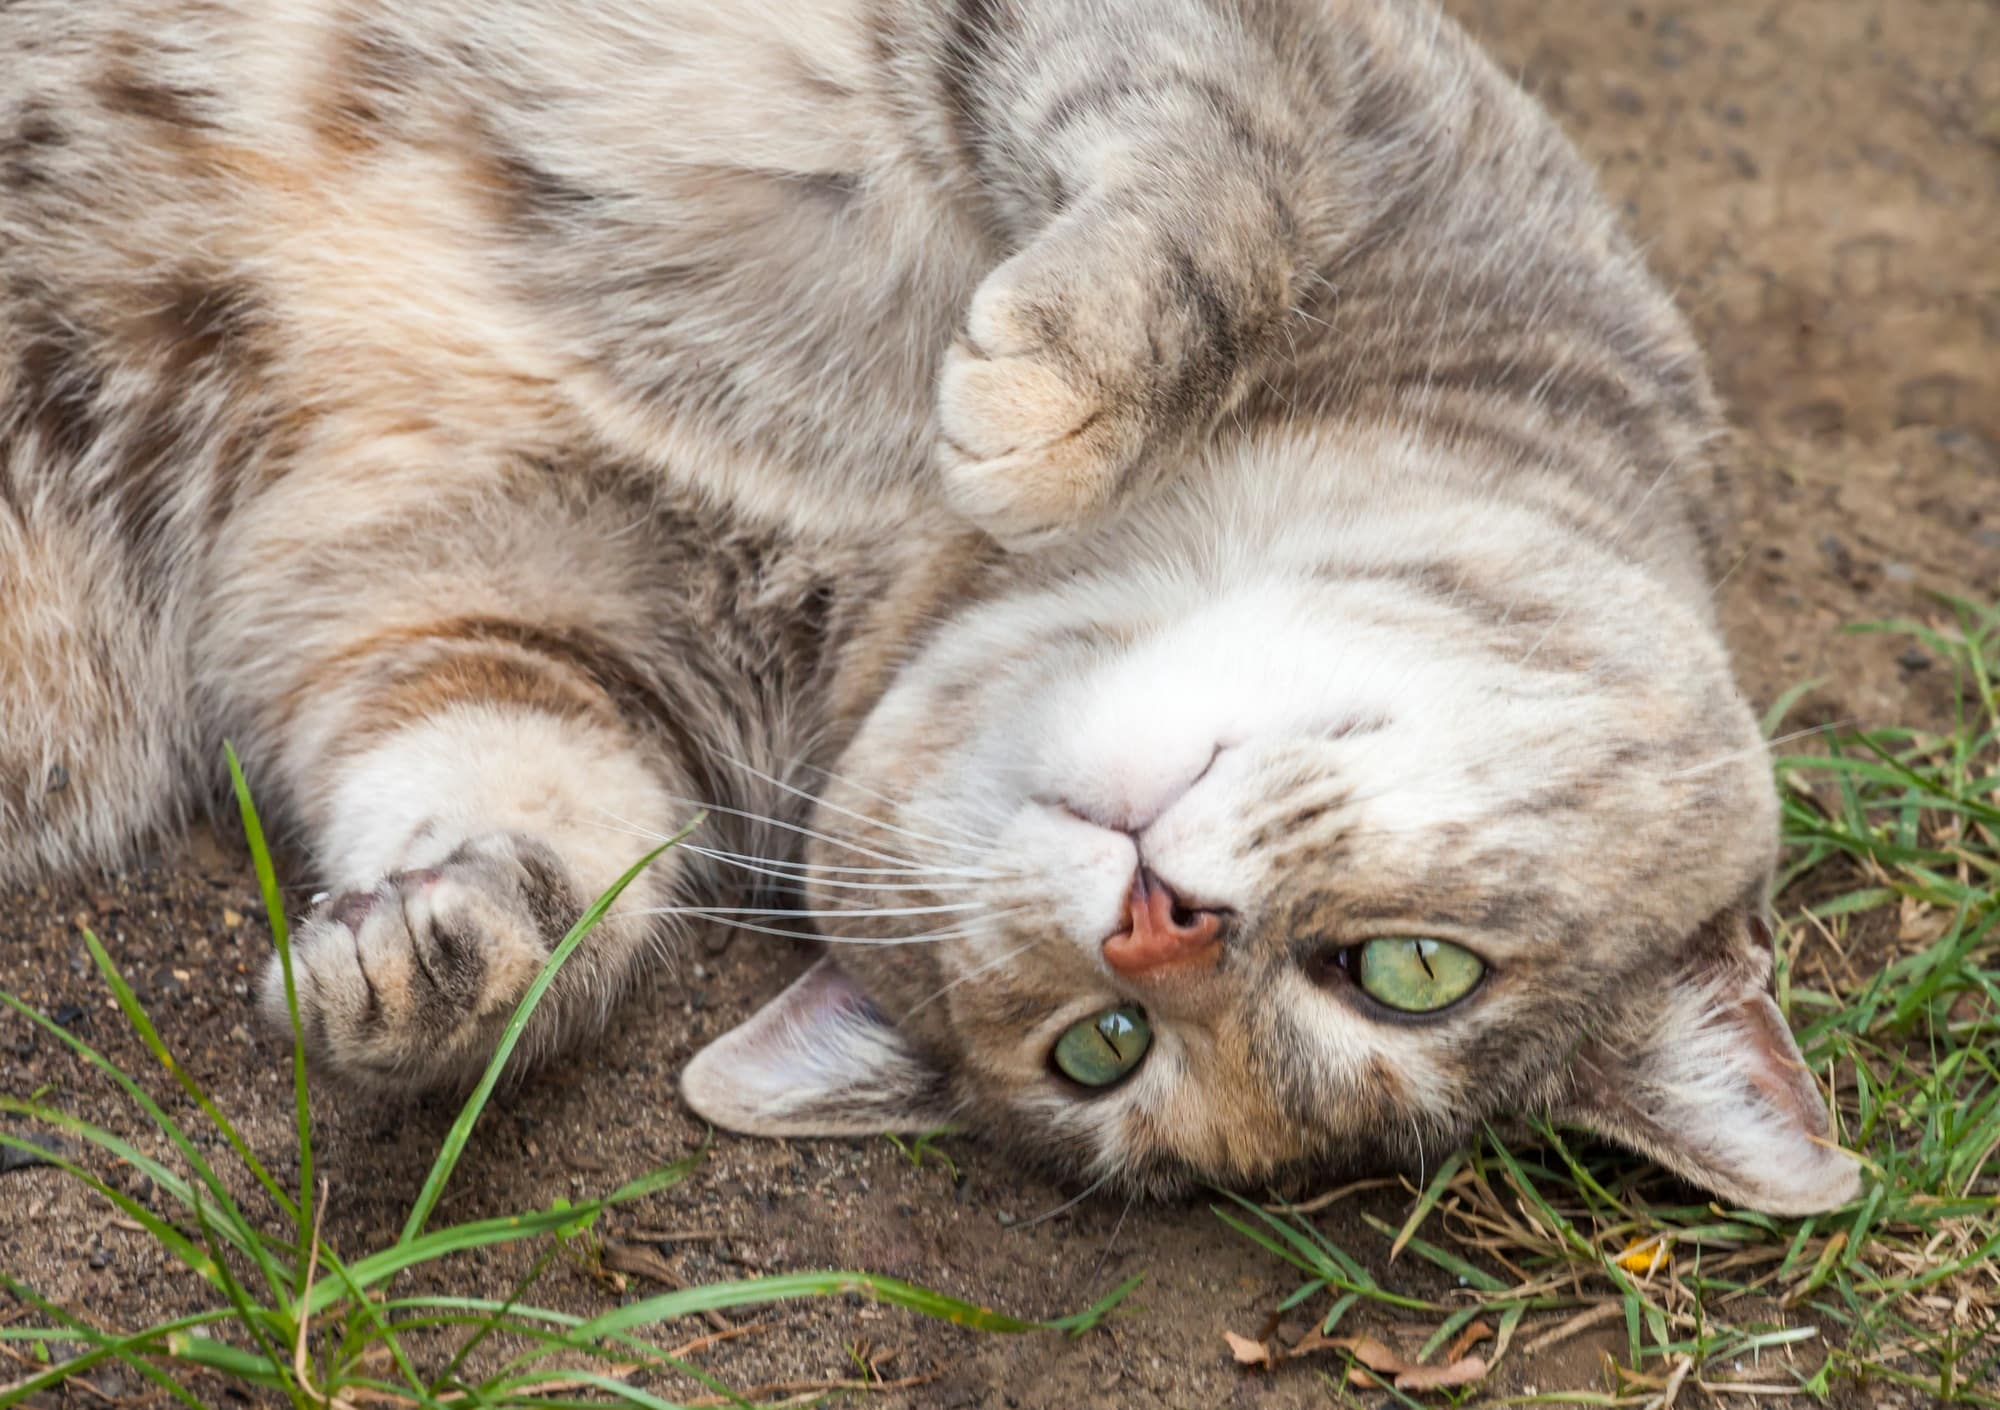 cats like rolling around in the dirt